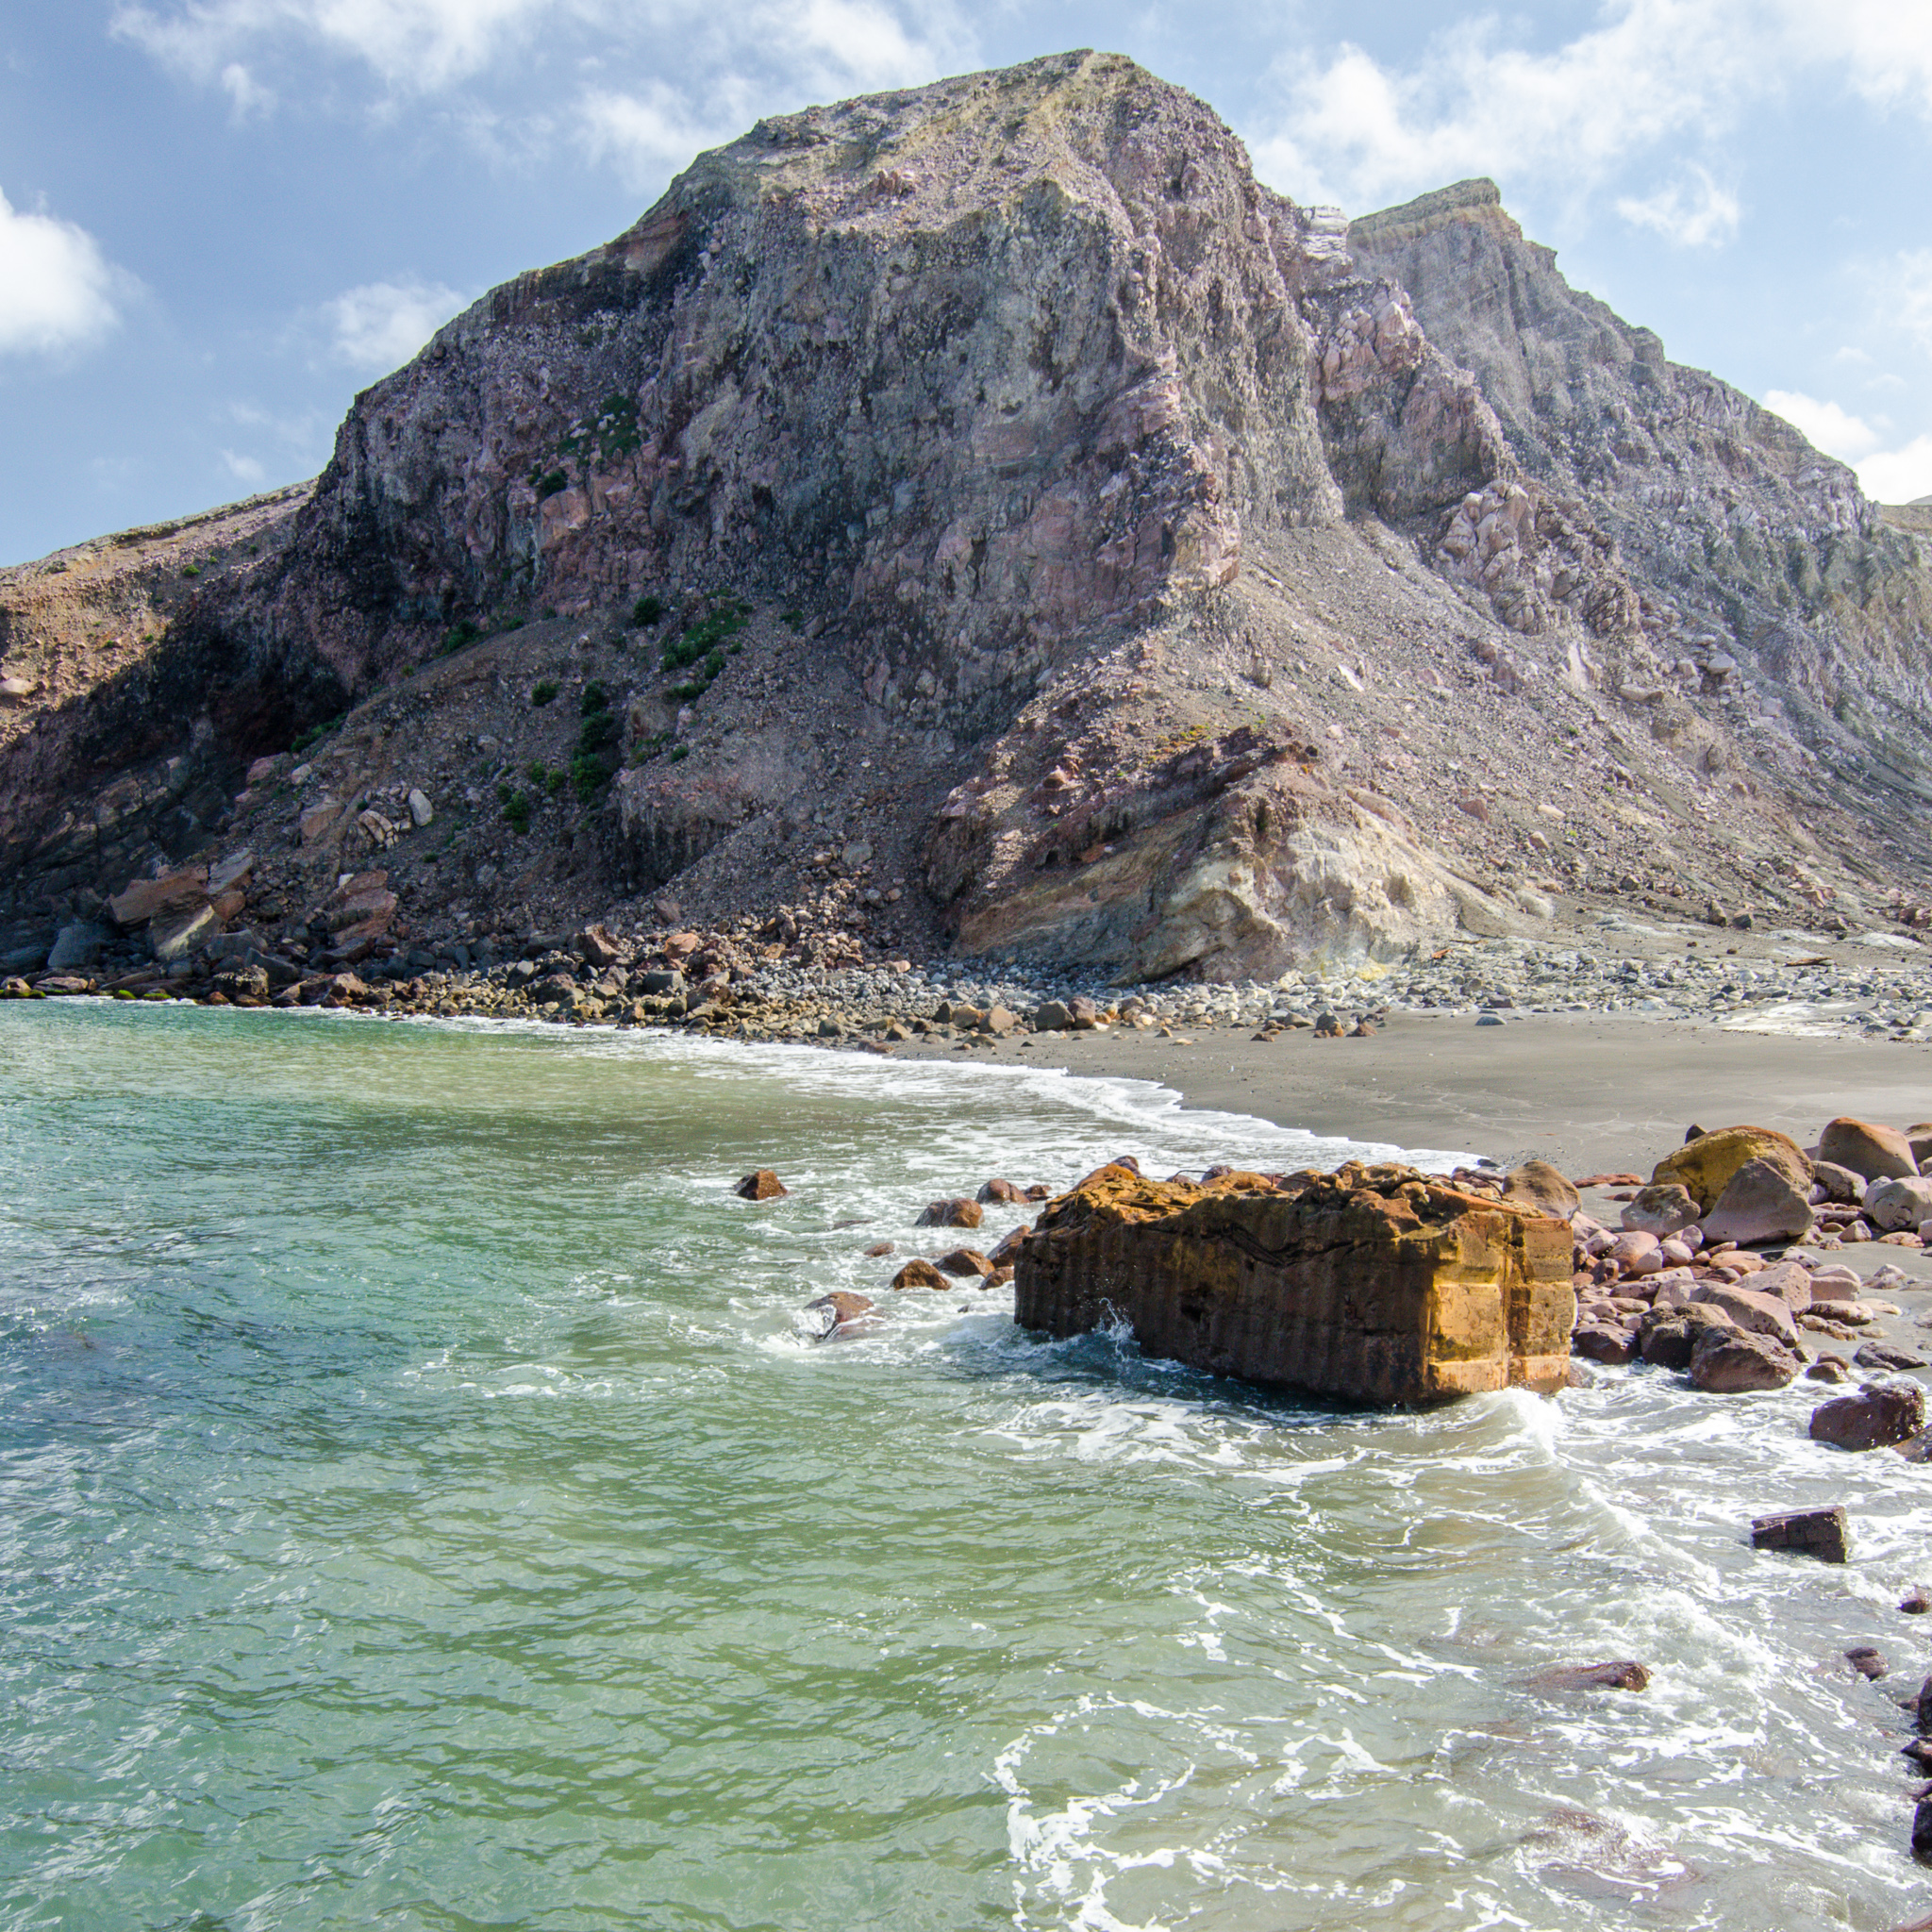 Barren volcanic mountain on White Island, with a foreground of green water and rusted remnants of life on the island.